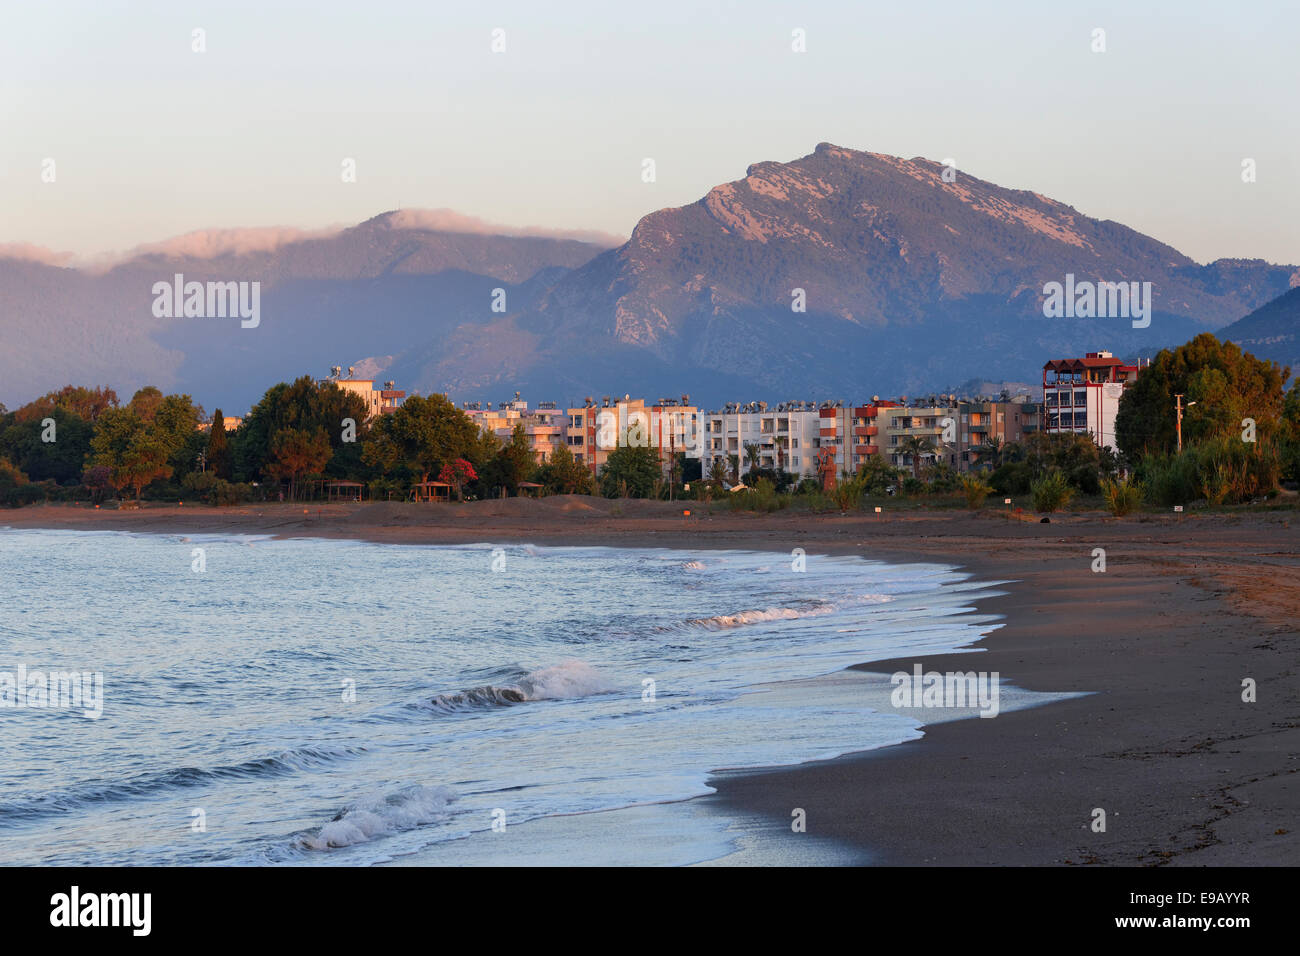 Early morning on the beach with Iskele district, Anamur, Mersin Province, Turkish Riviera, Turkey - Stock Image